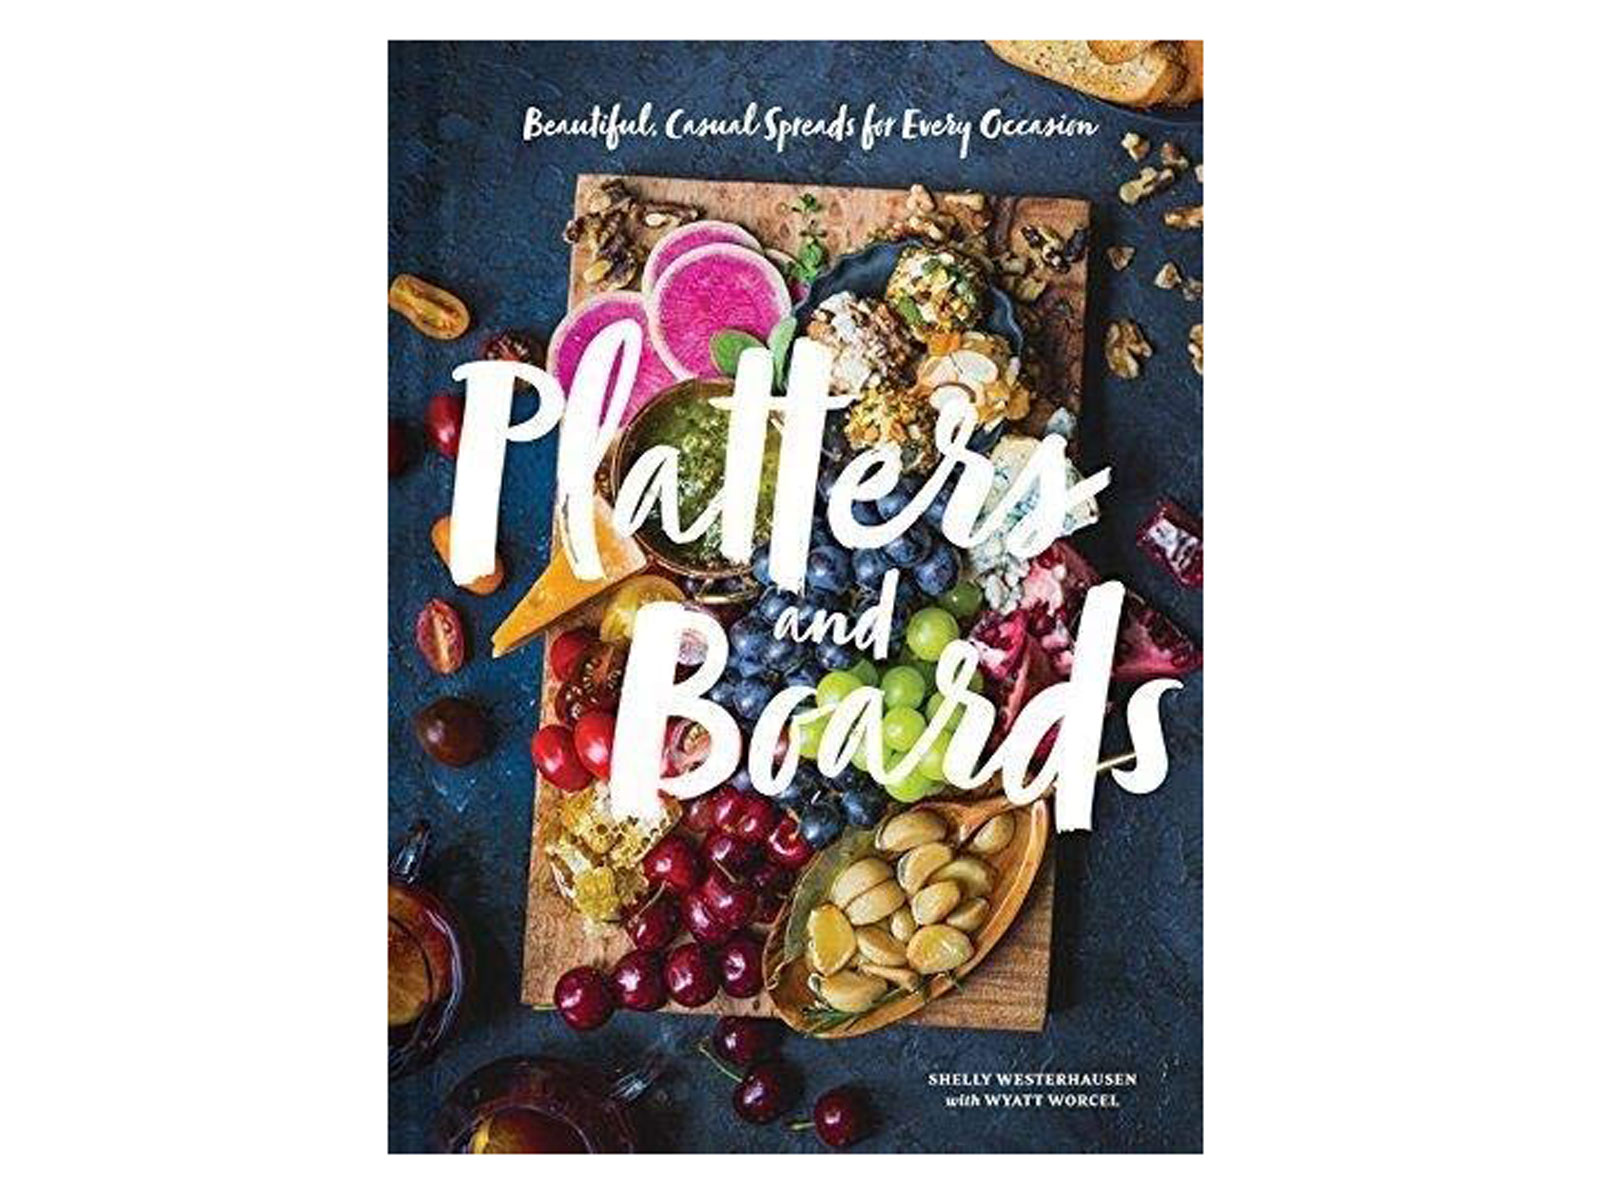 platters and boards cookbook